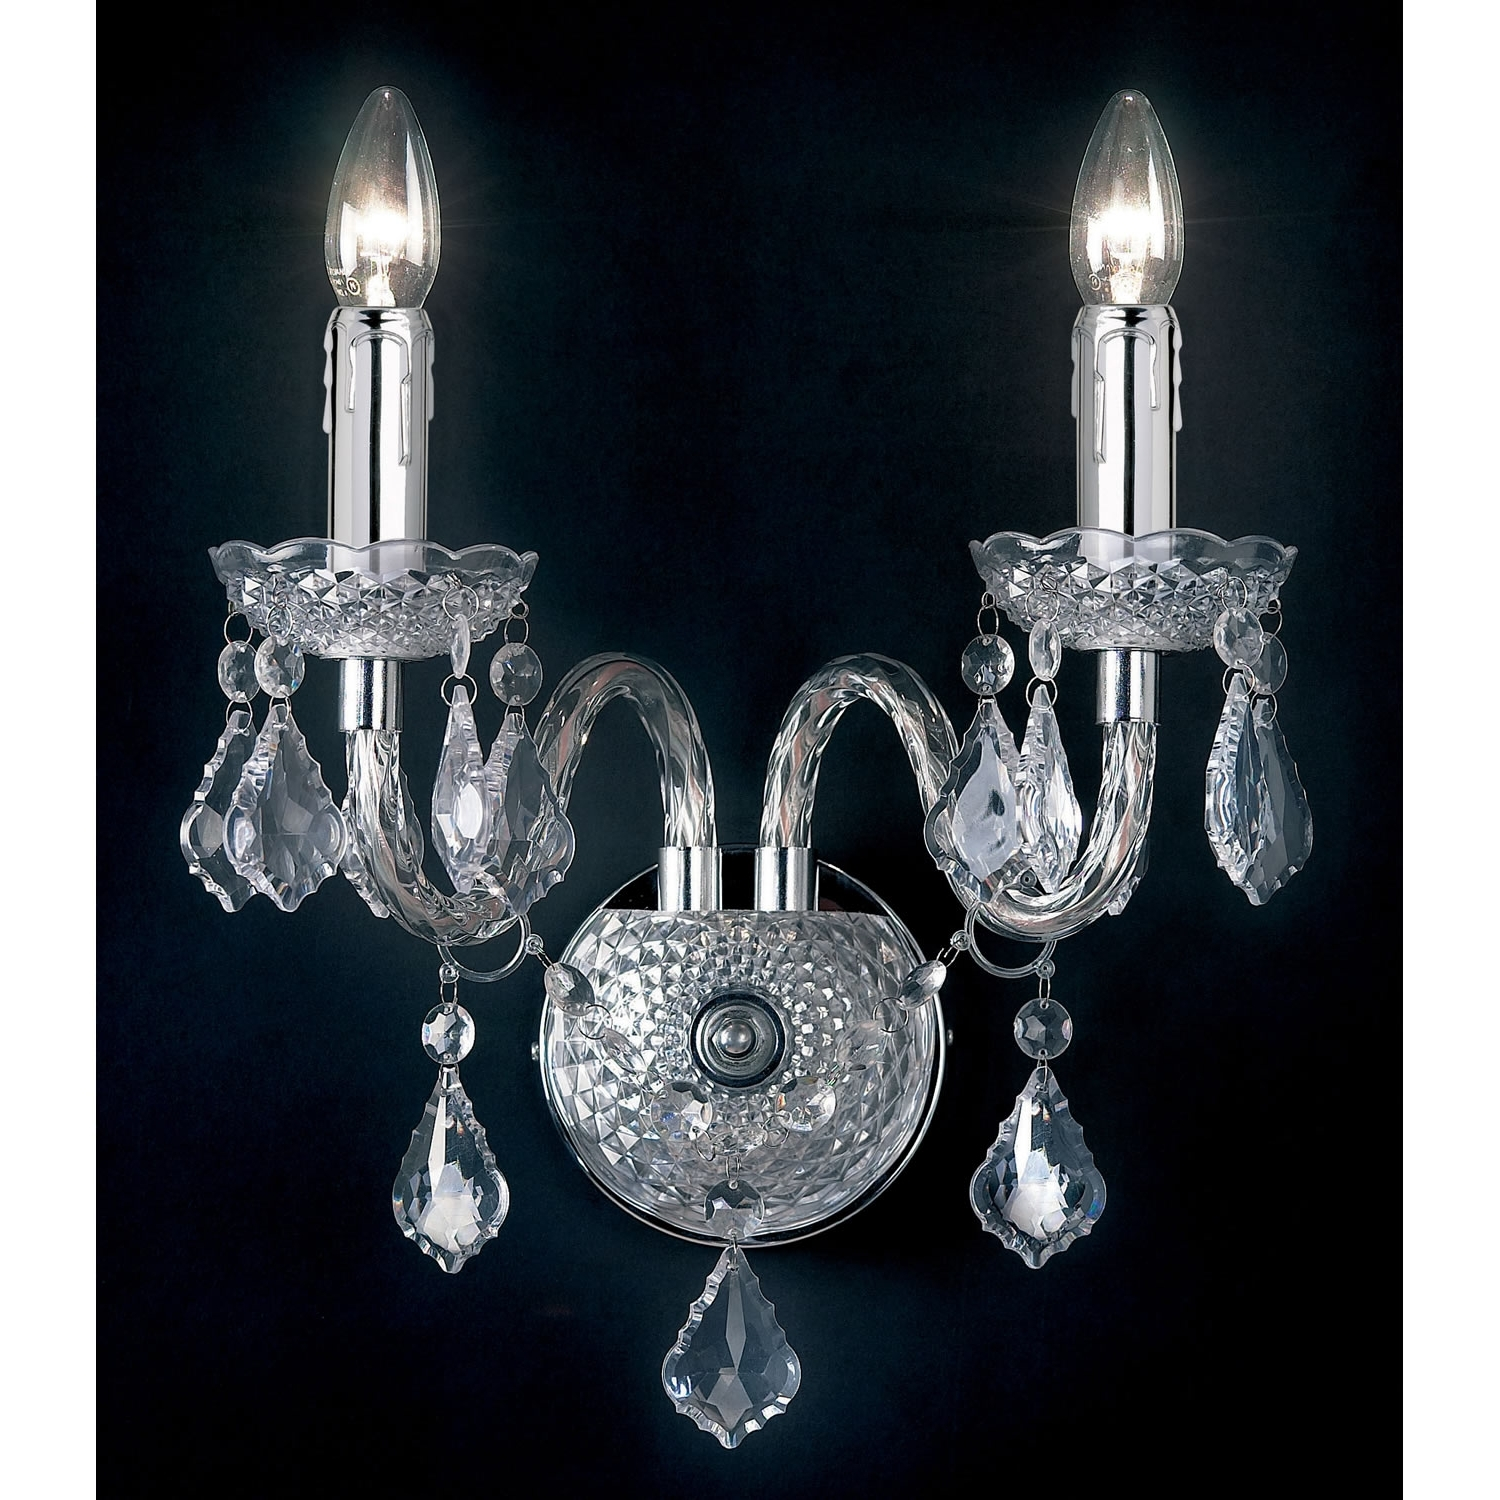 Endon Lighting 2 Light Wall Chandelier In Clear E2 80 93 Next Day For Well Known Chandelier Wall Lights (Gallery 7 of 20)